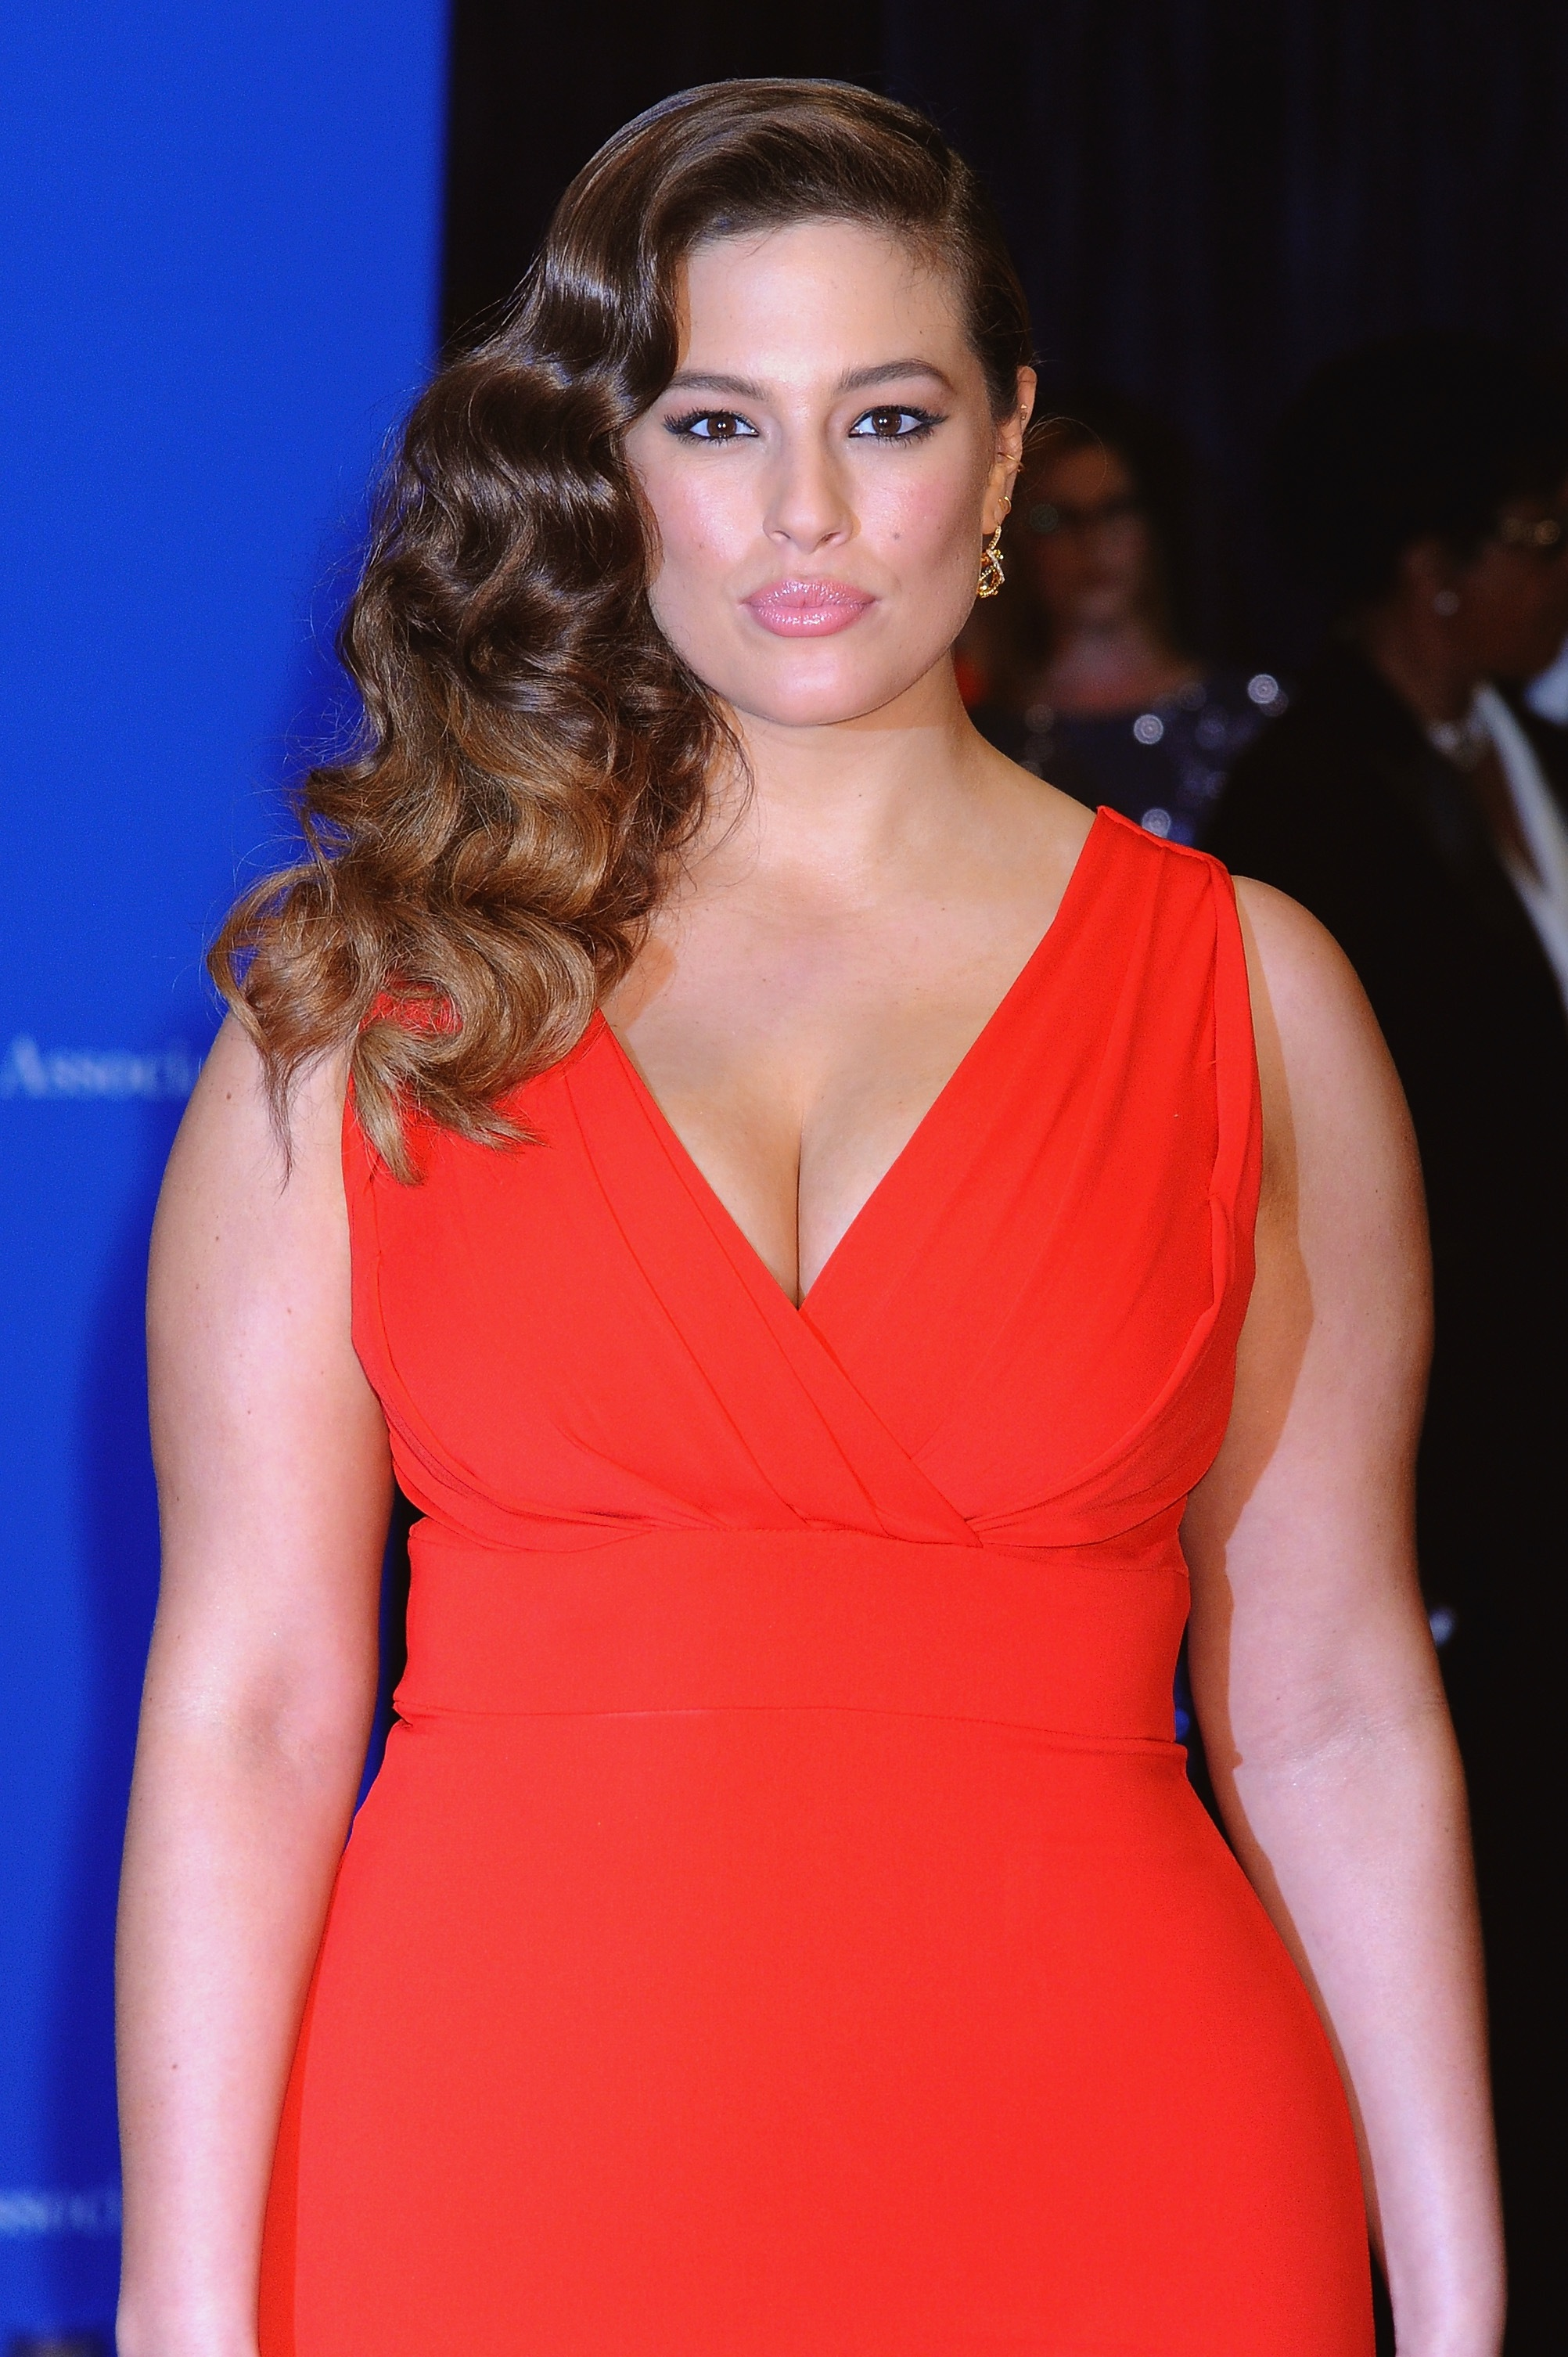 Ashley Graham: Ashley Graham Workout Routine Details Video